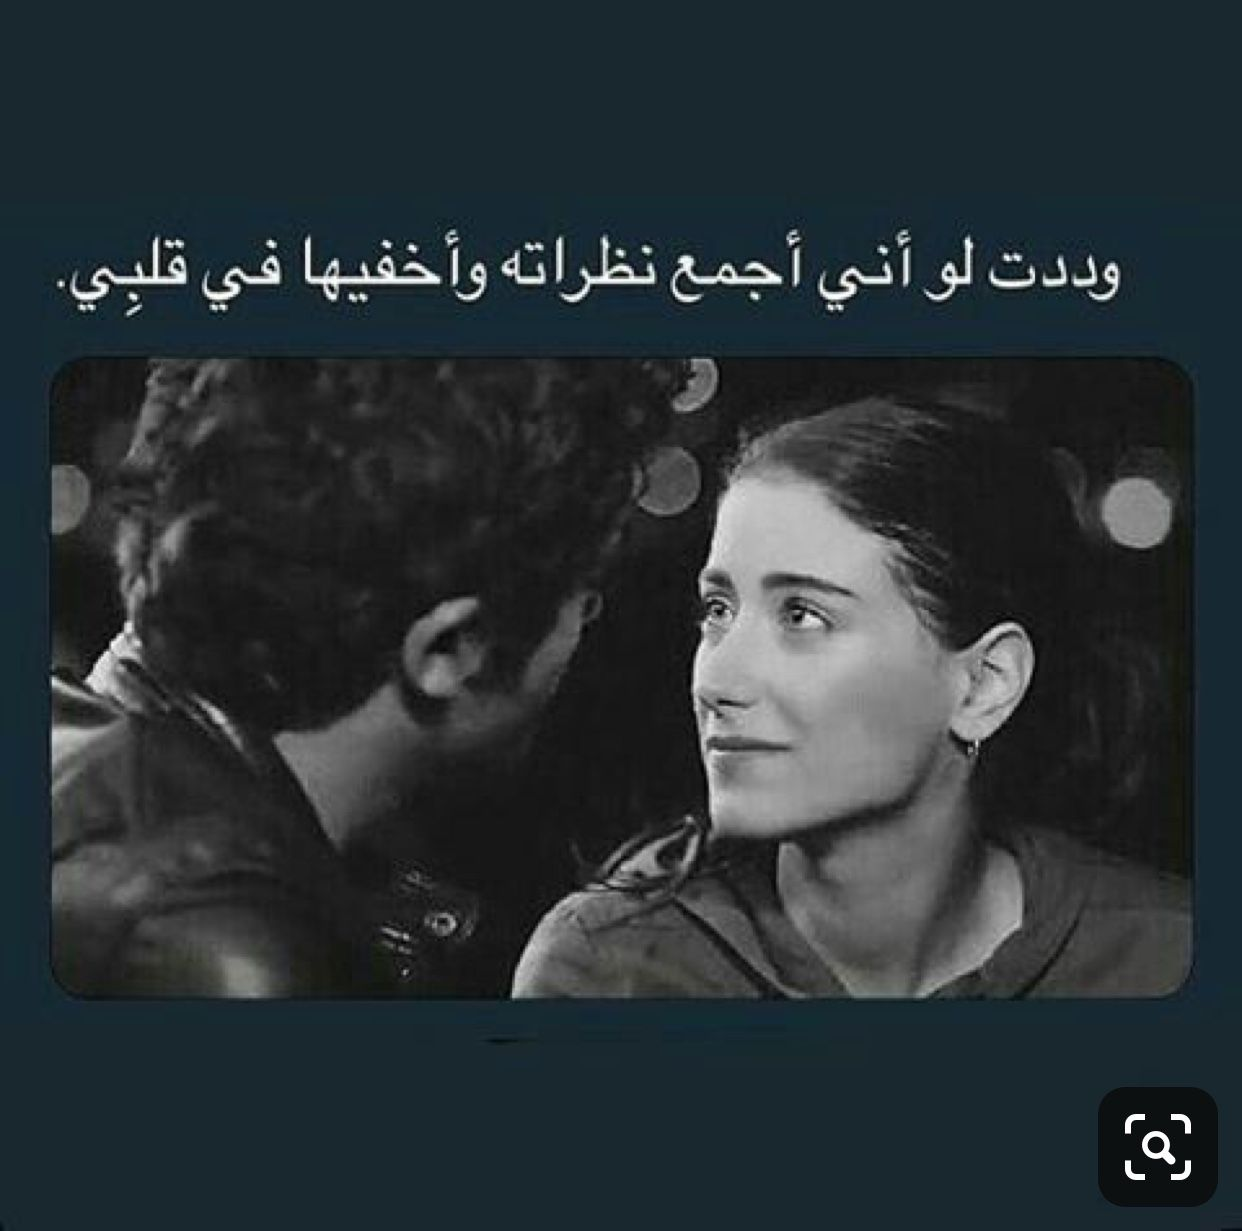 Pin By Noon On Fotografia Love Smile Quotes Arabic Love Quotes Smile Quotes